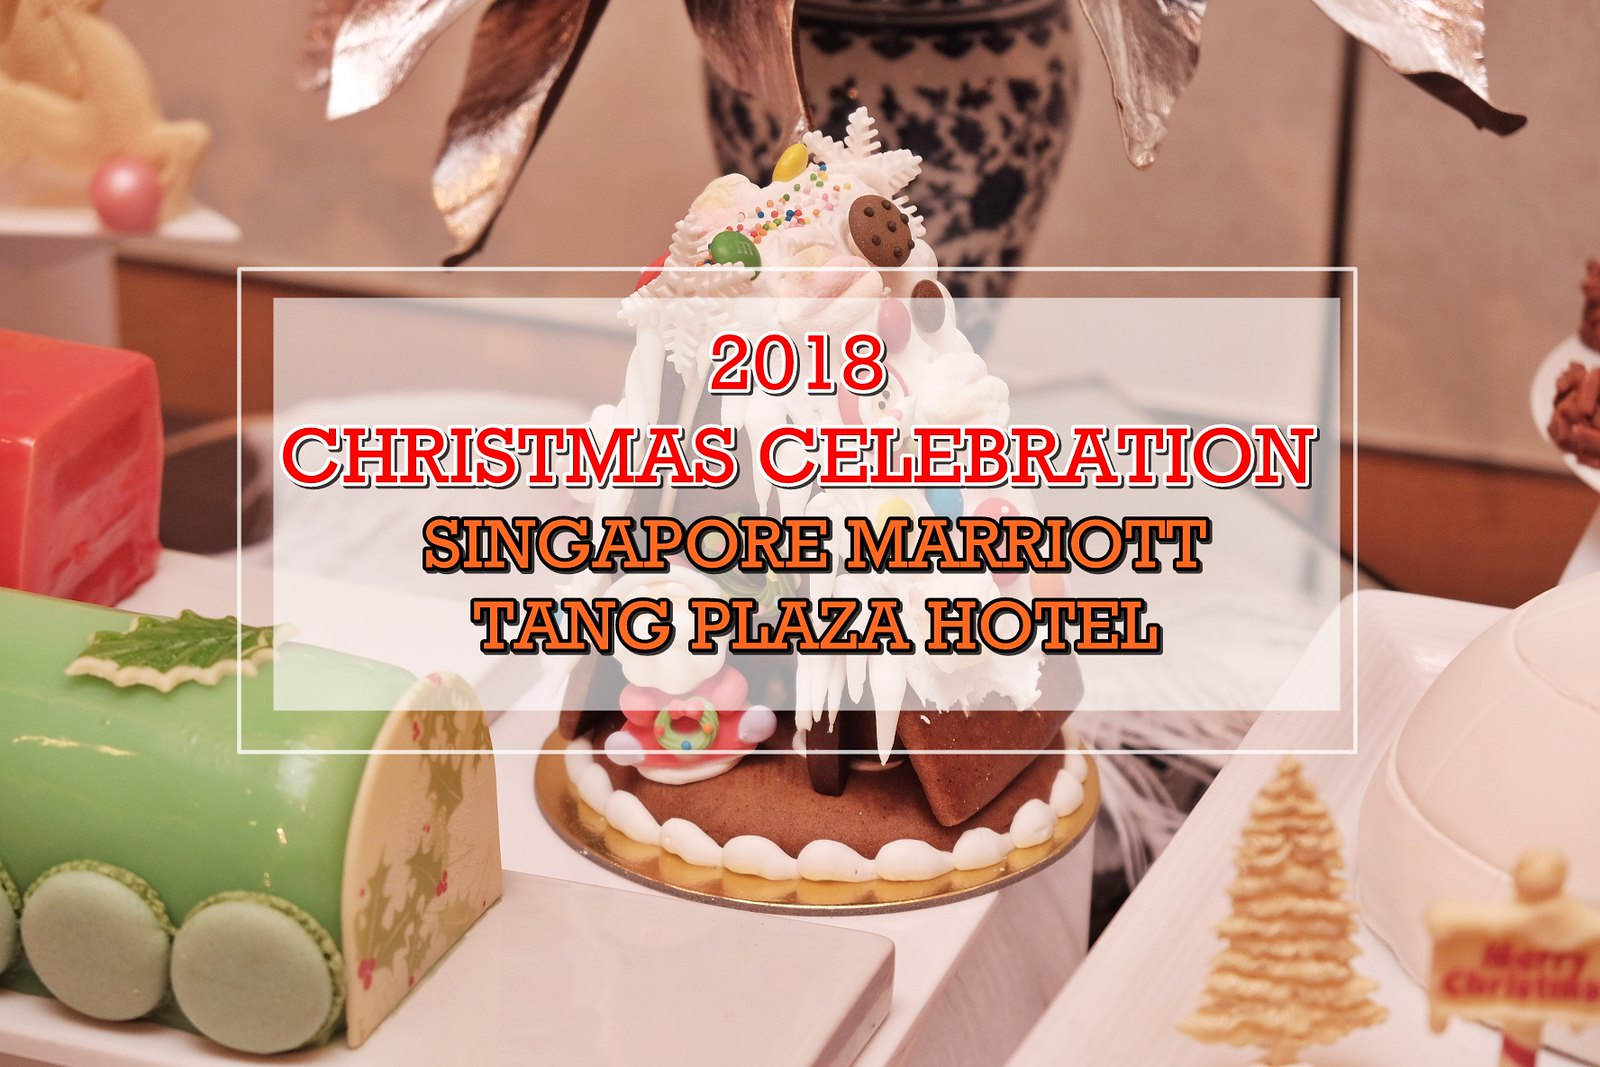 [SG EATS] 2018 Christmas Highlights At Singapore Marriott Tang Plaza Hotel